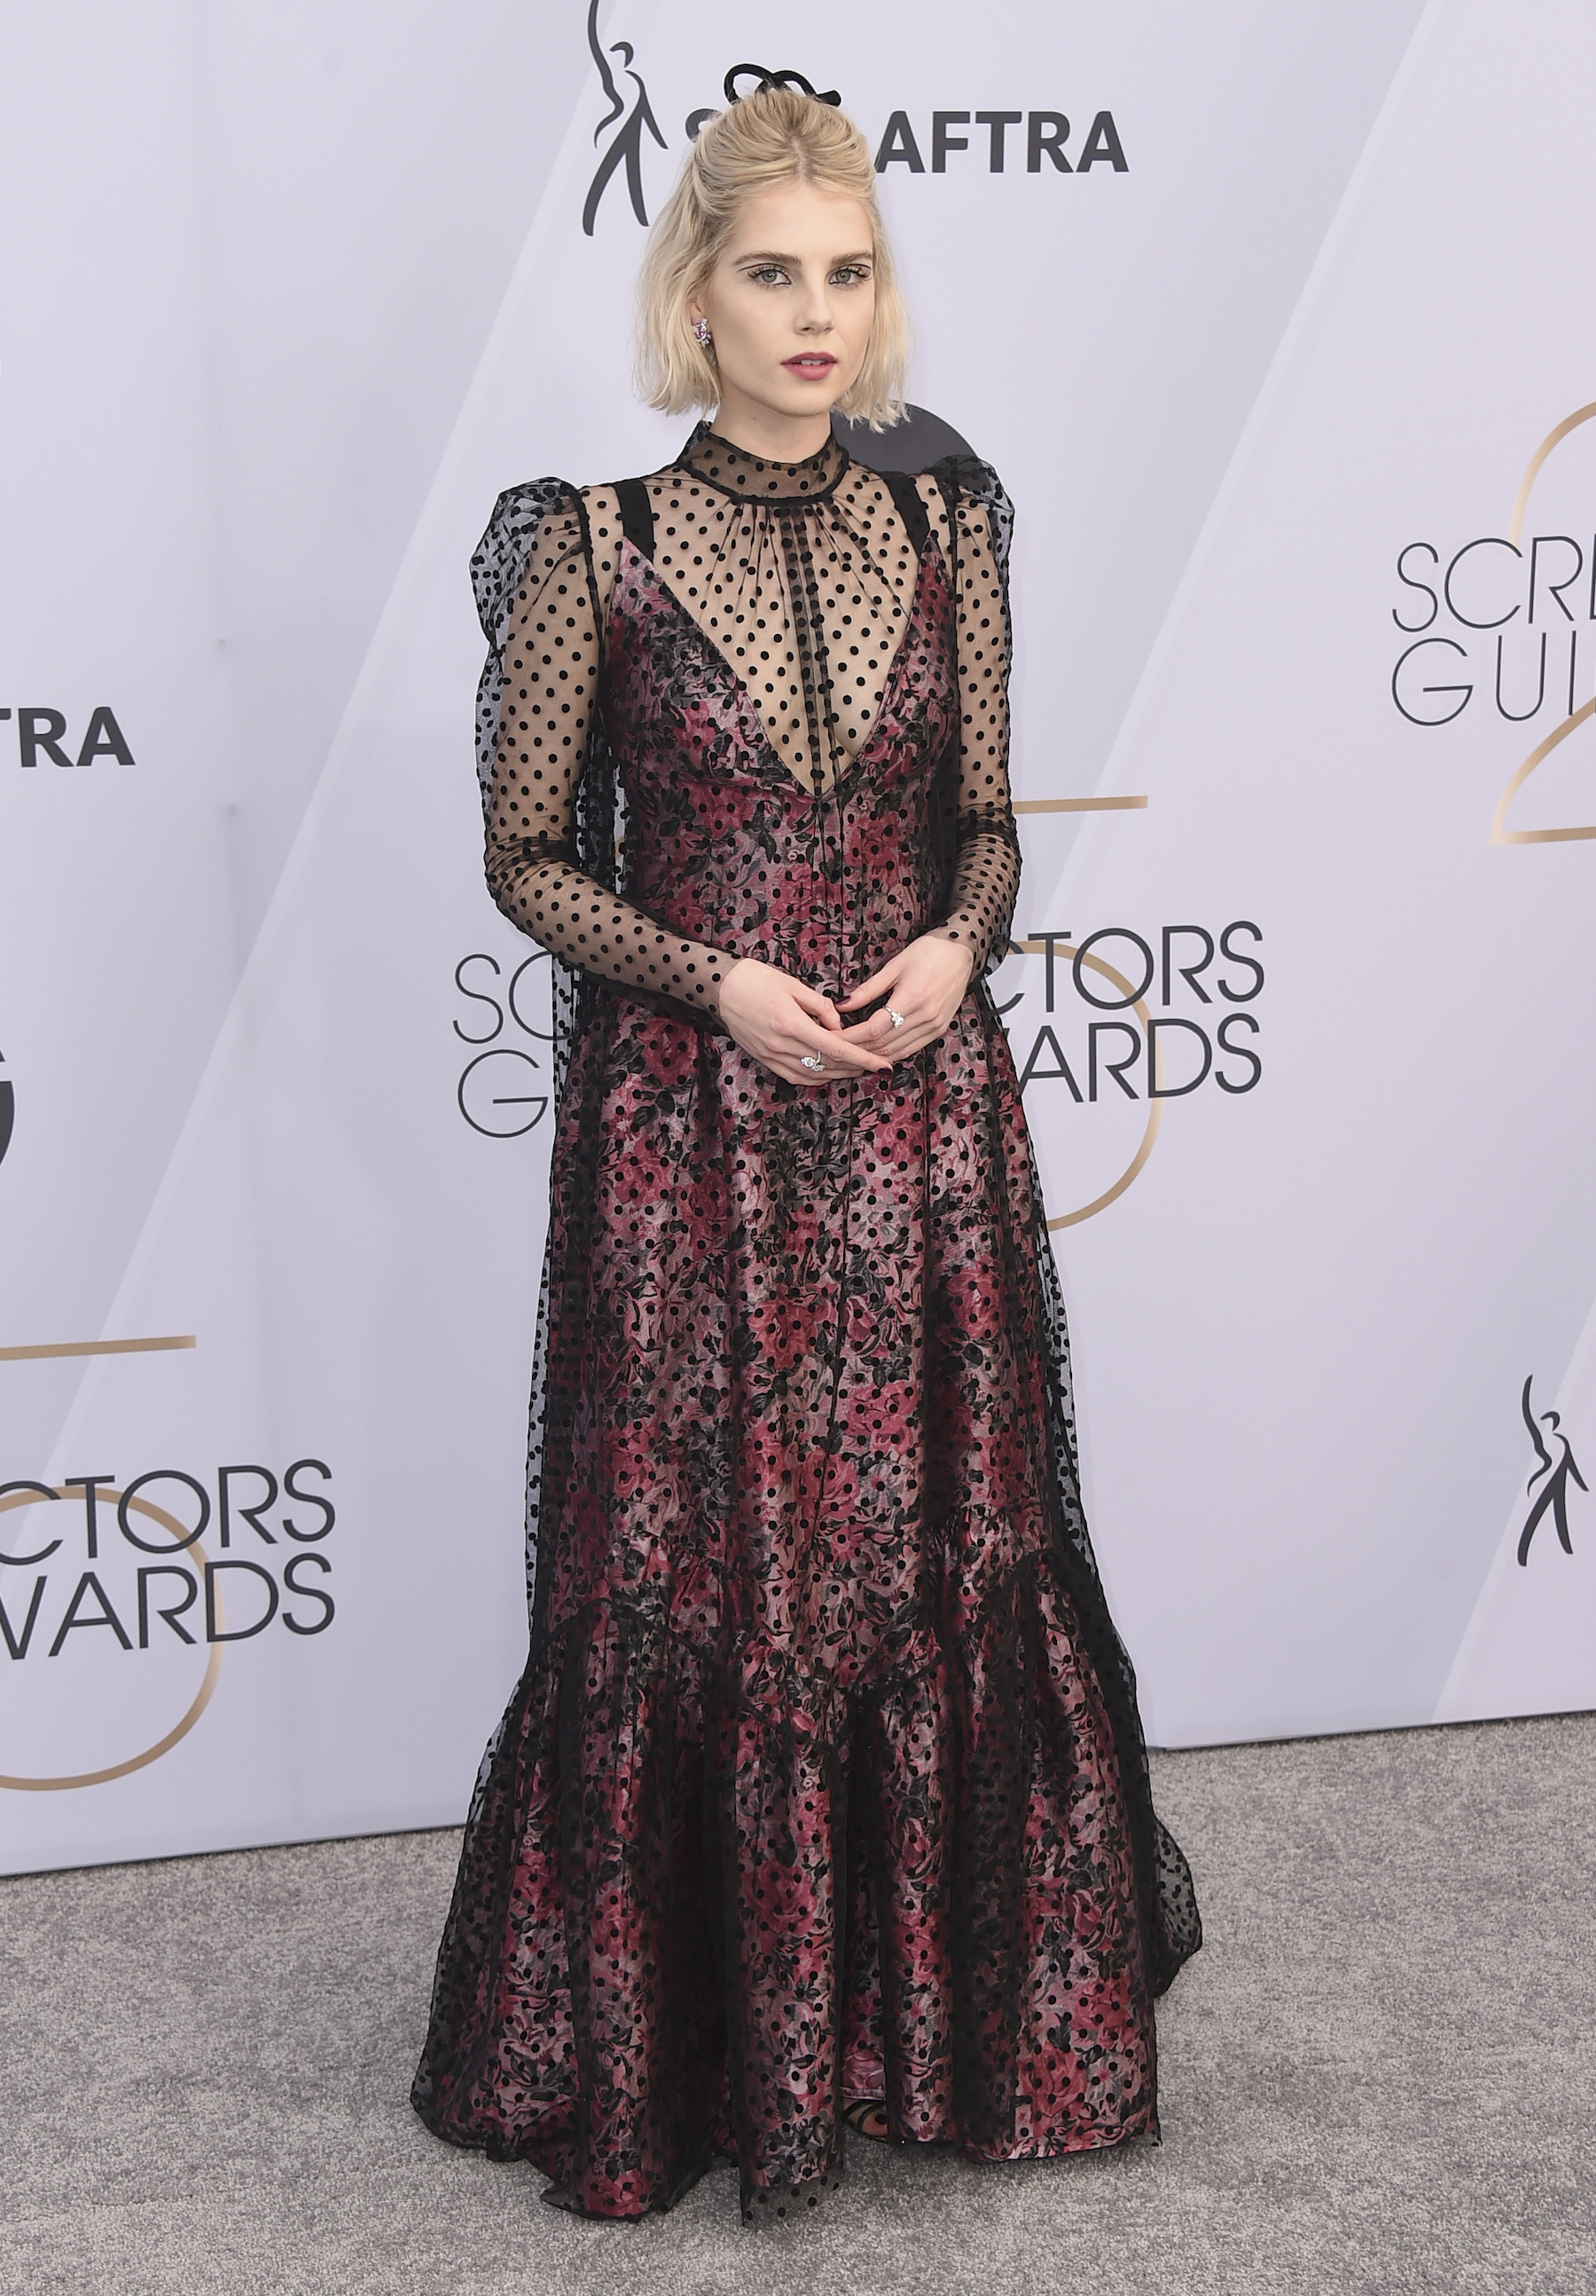 "<div class=""meta image-caption""><div class=""origin-logo origin-image ap""><span>AP</span></div><span class=""caption-text"">Lucy Boynton arrives at the 25th annual Screen Actors Guild Awards at the Shrine Auditorium & Expo Hall on Sunday, Jan. 27, 2019, in Los Angeles. (Jordan Strauss/Invision/AP)</span></div>"